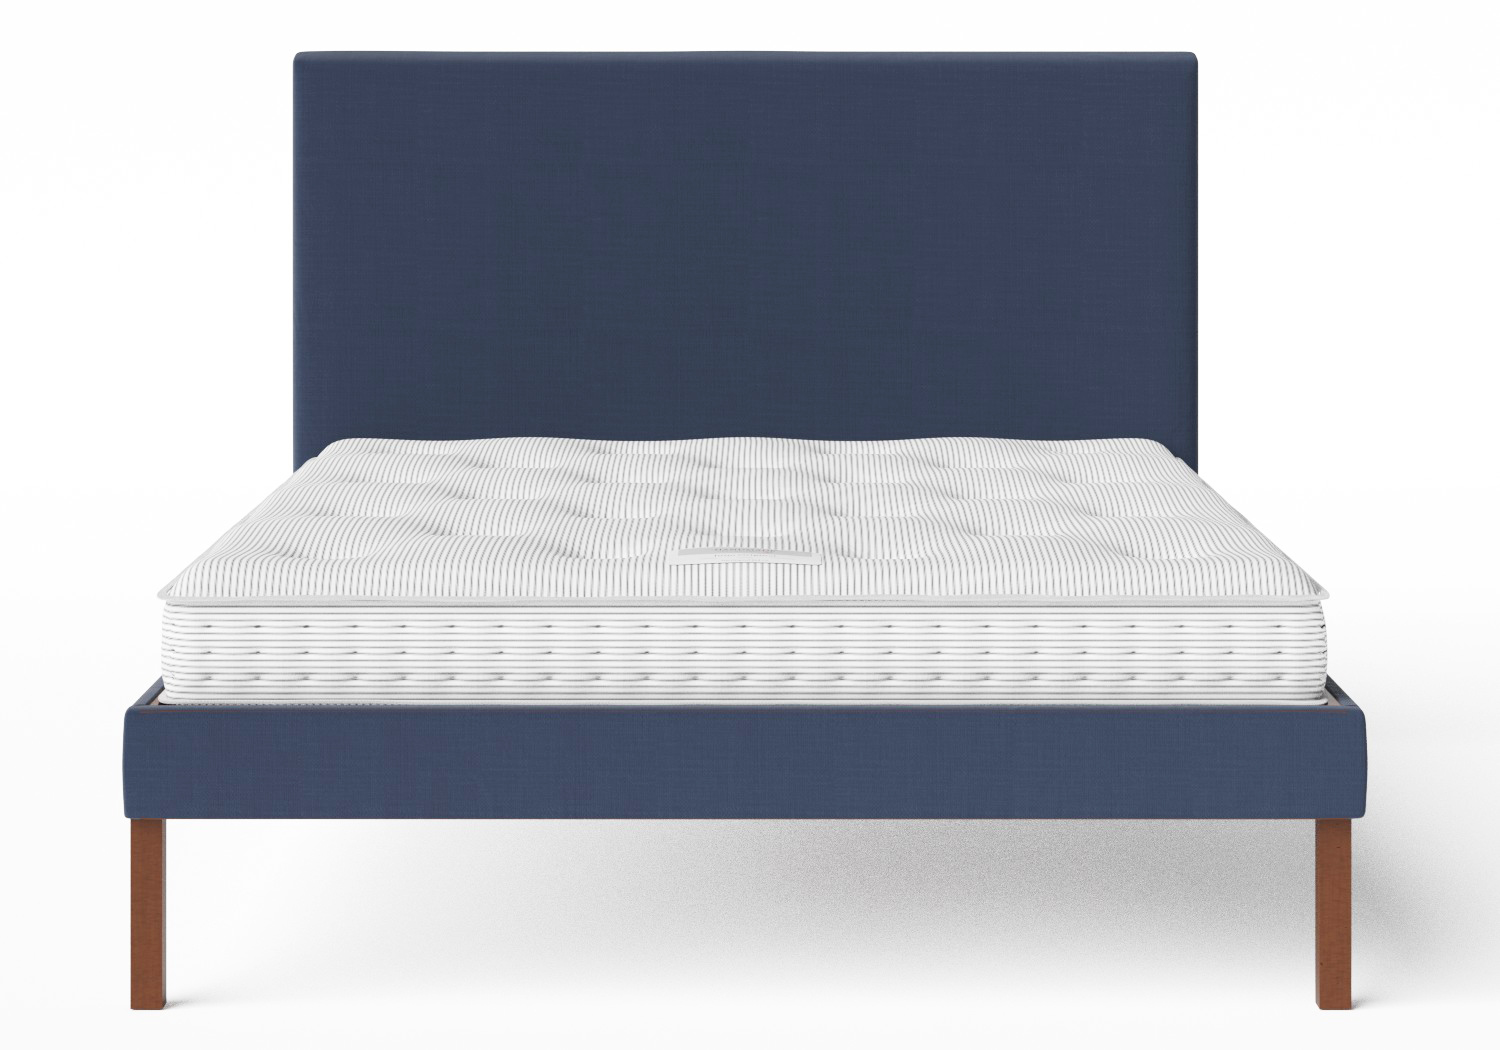 Misaki Upholstered Bed in Navy fabric shown with Juno 1 mattress